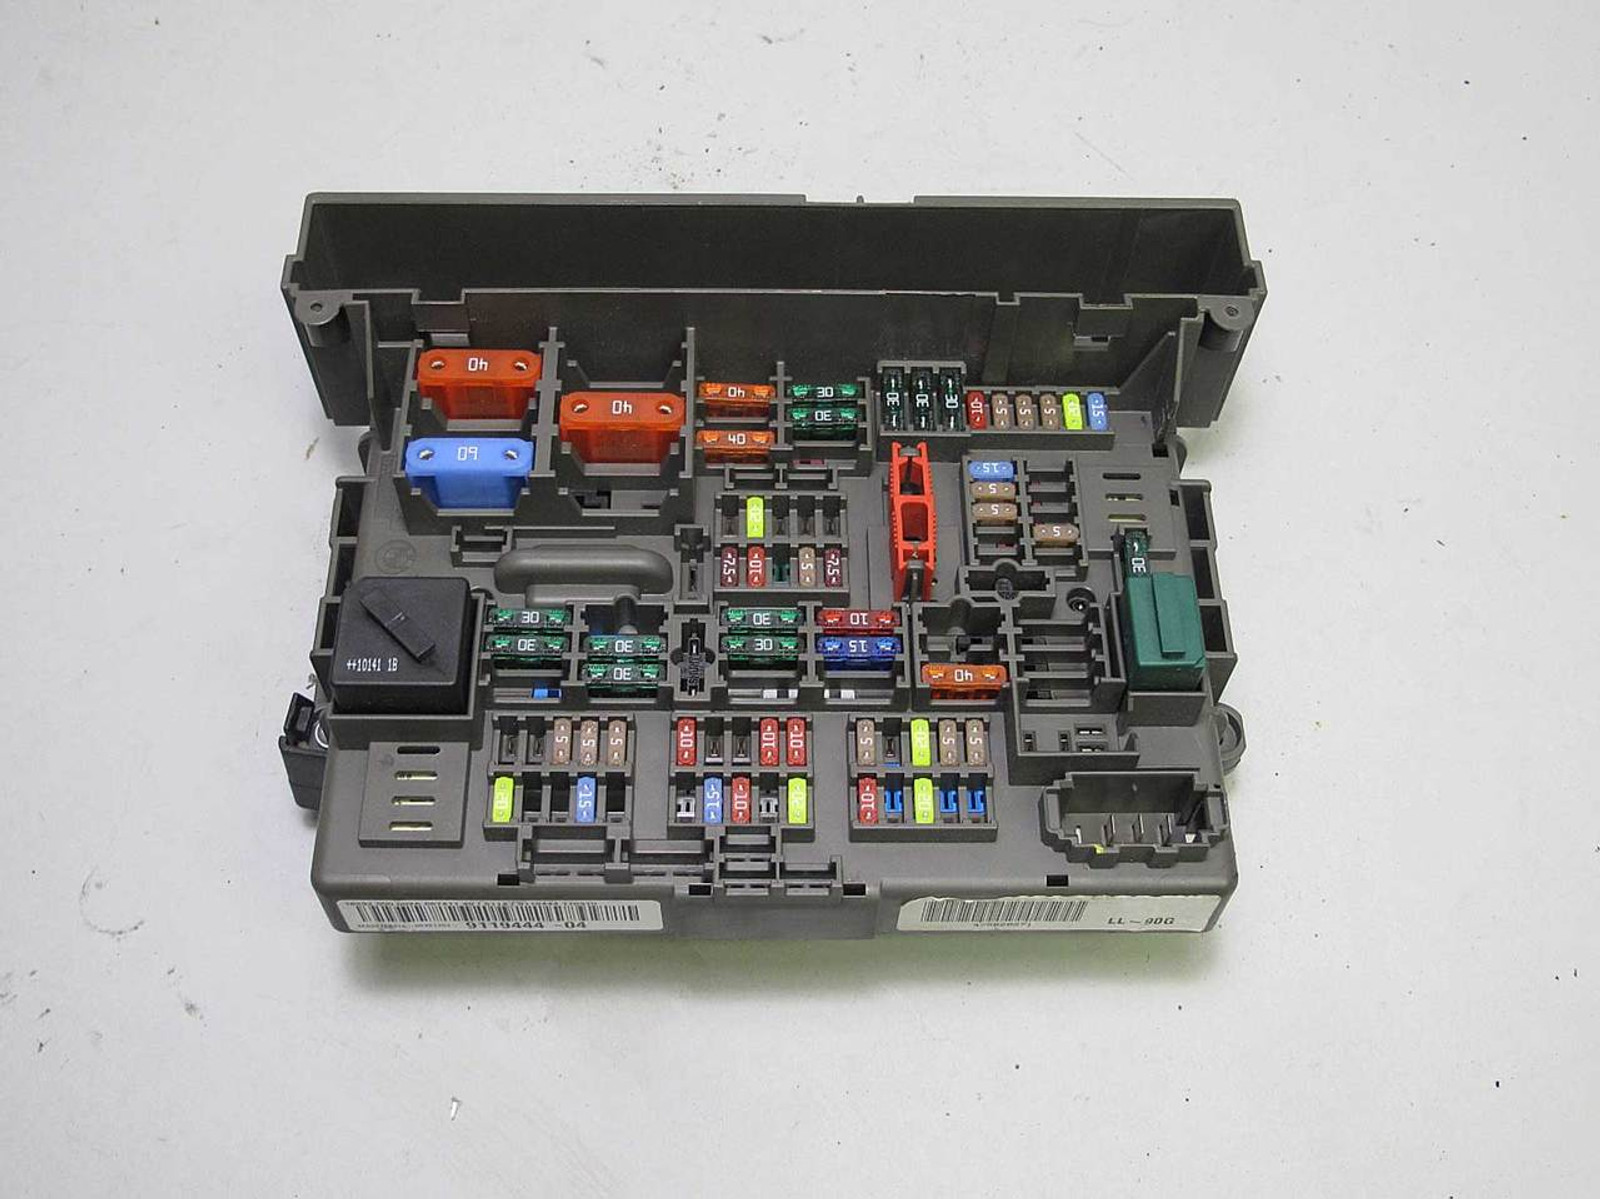 2008 Bmw 335i Fuse Box Diagram Further 1997 Buick Lesabre Fuse Box